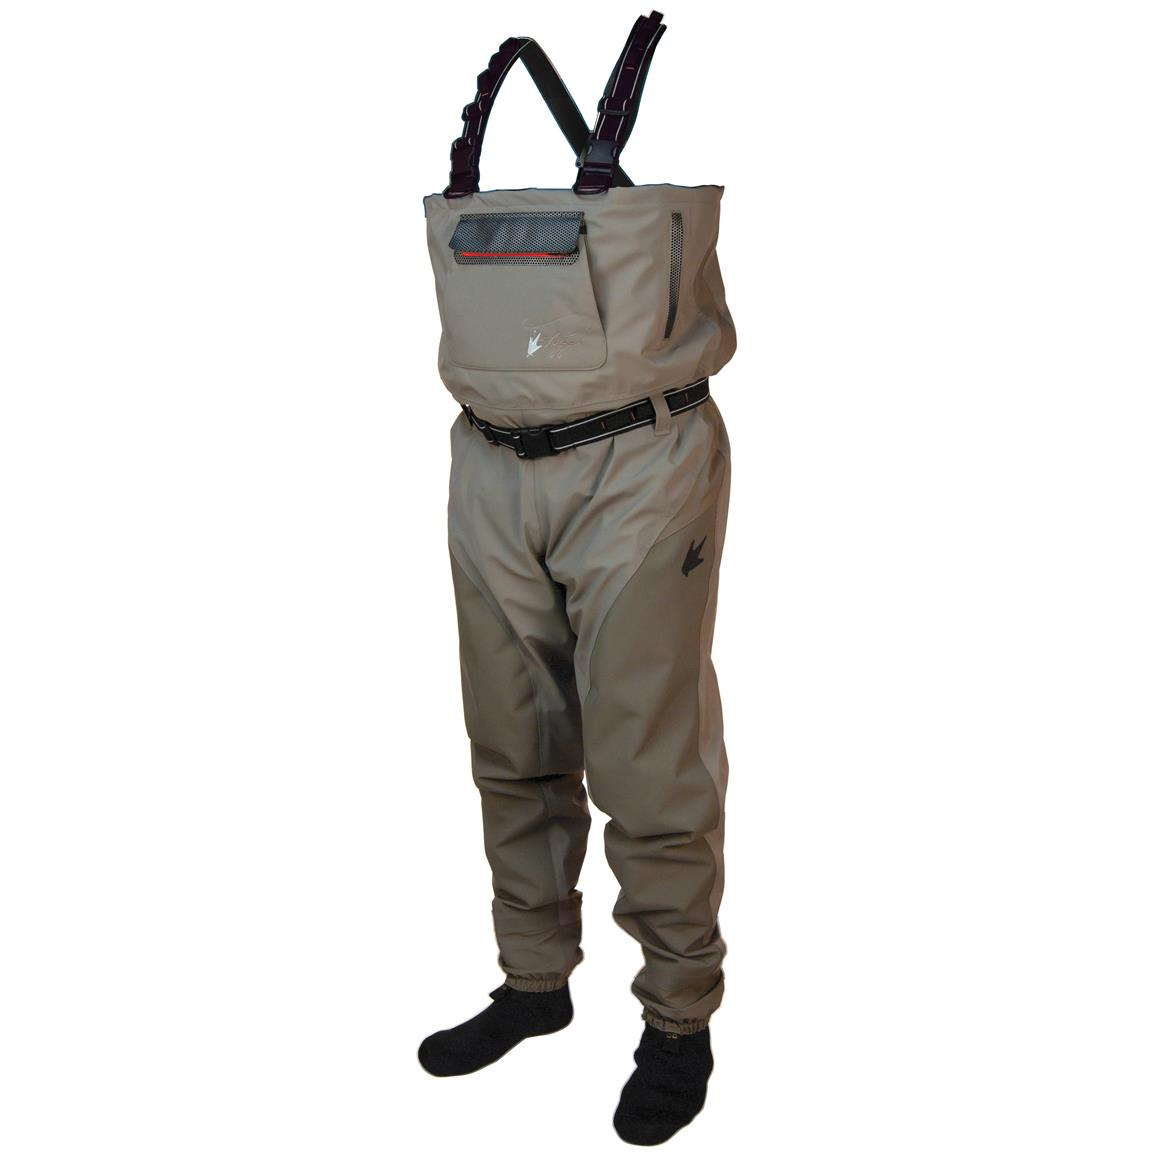 Frogg toggs anura ii reinforced nylon stockingfoot waders for Fishing waders reviews